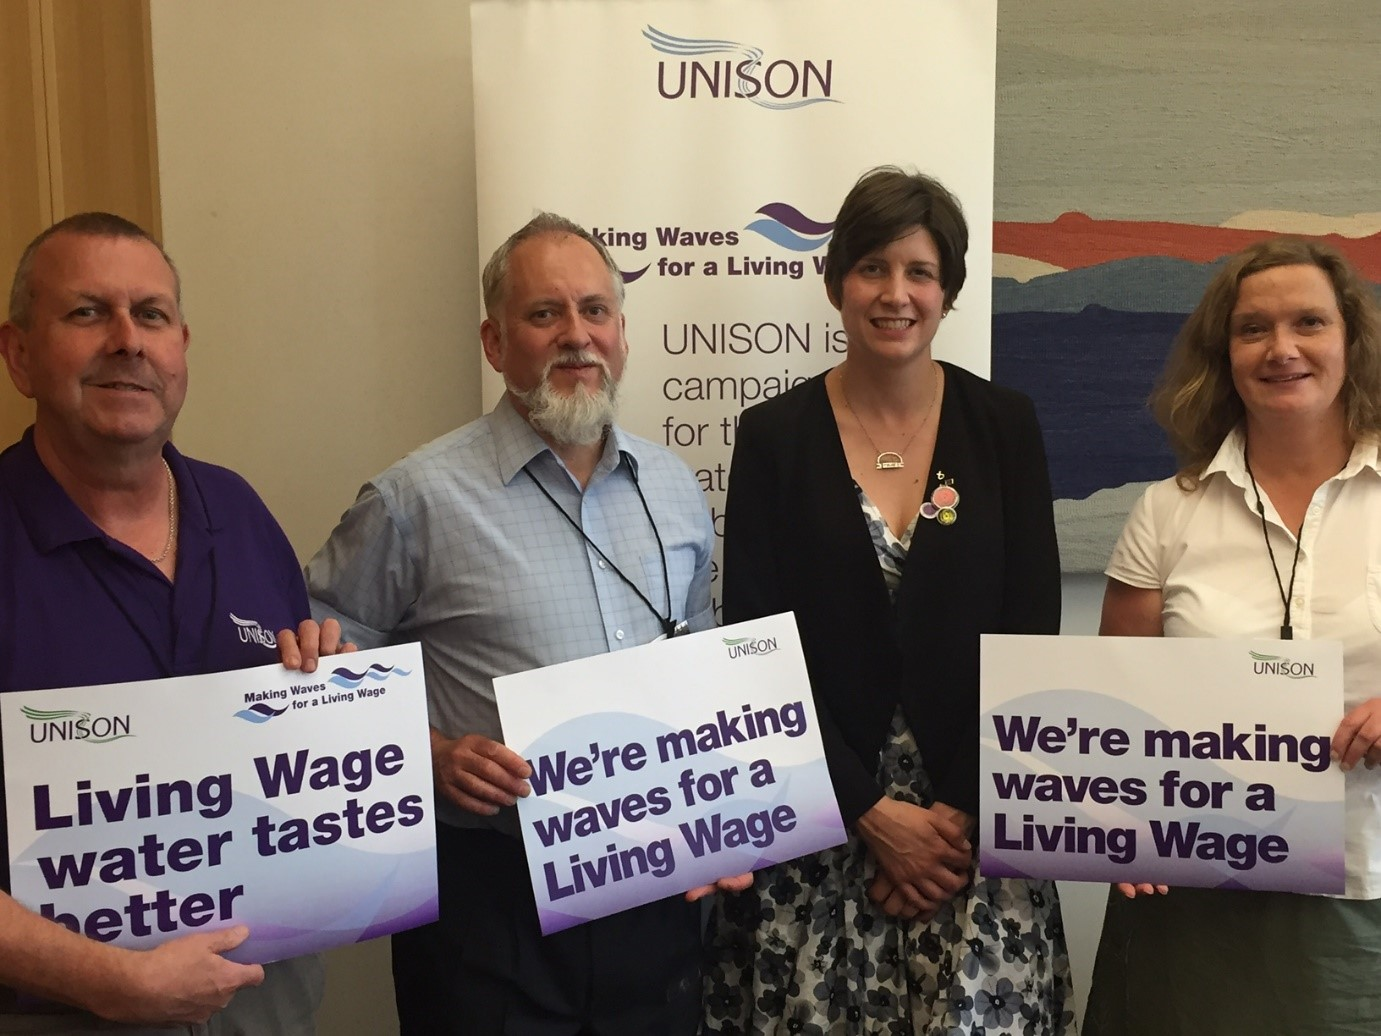 Alison Thewliss MP supports campaign for a Living Wage in the Water Industry